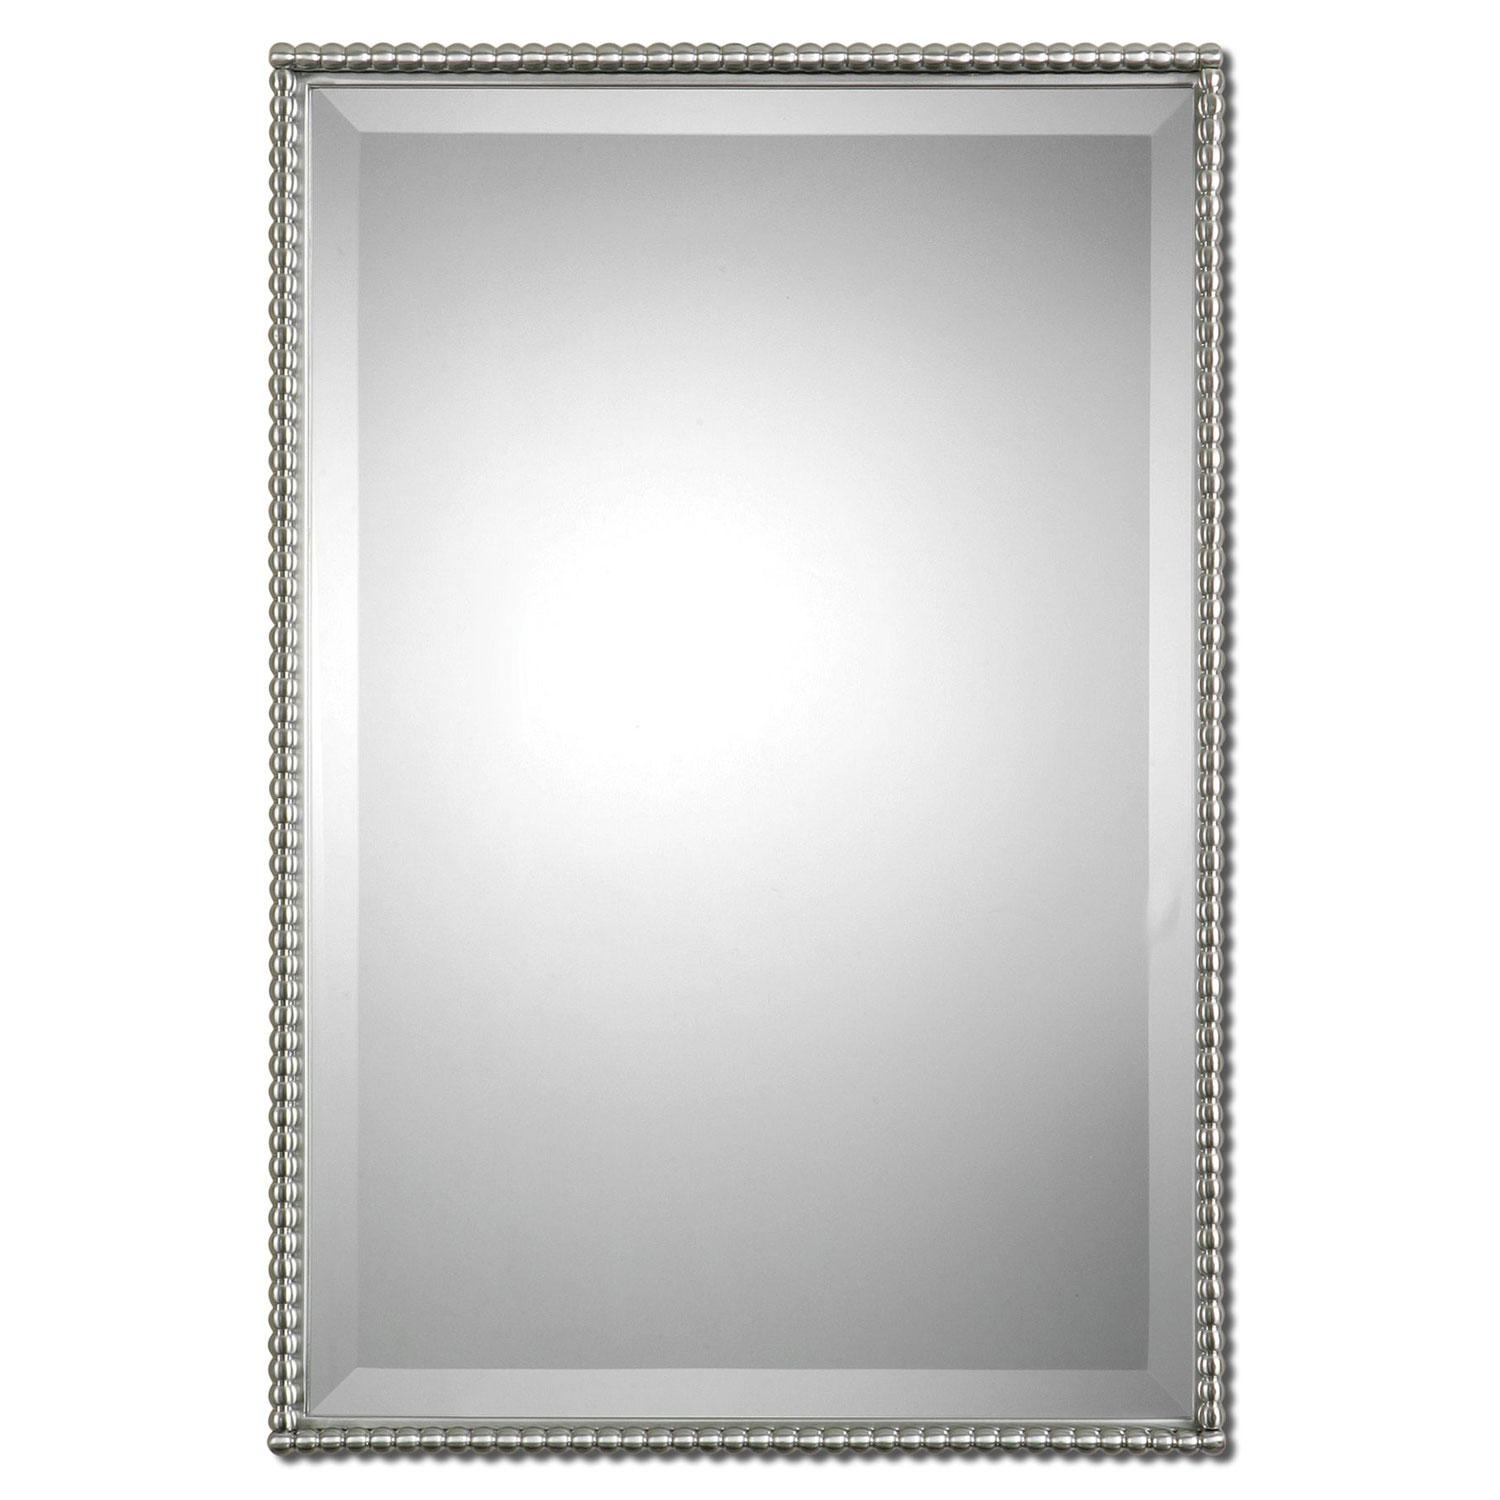 Nickel Brushed Mirrors | Bellacor For Long Rectangular Mirrors (Image 14 of 20)